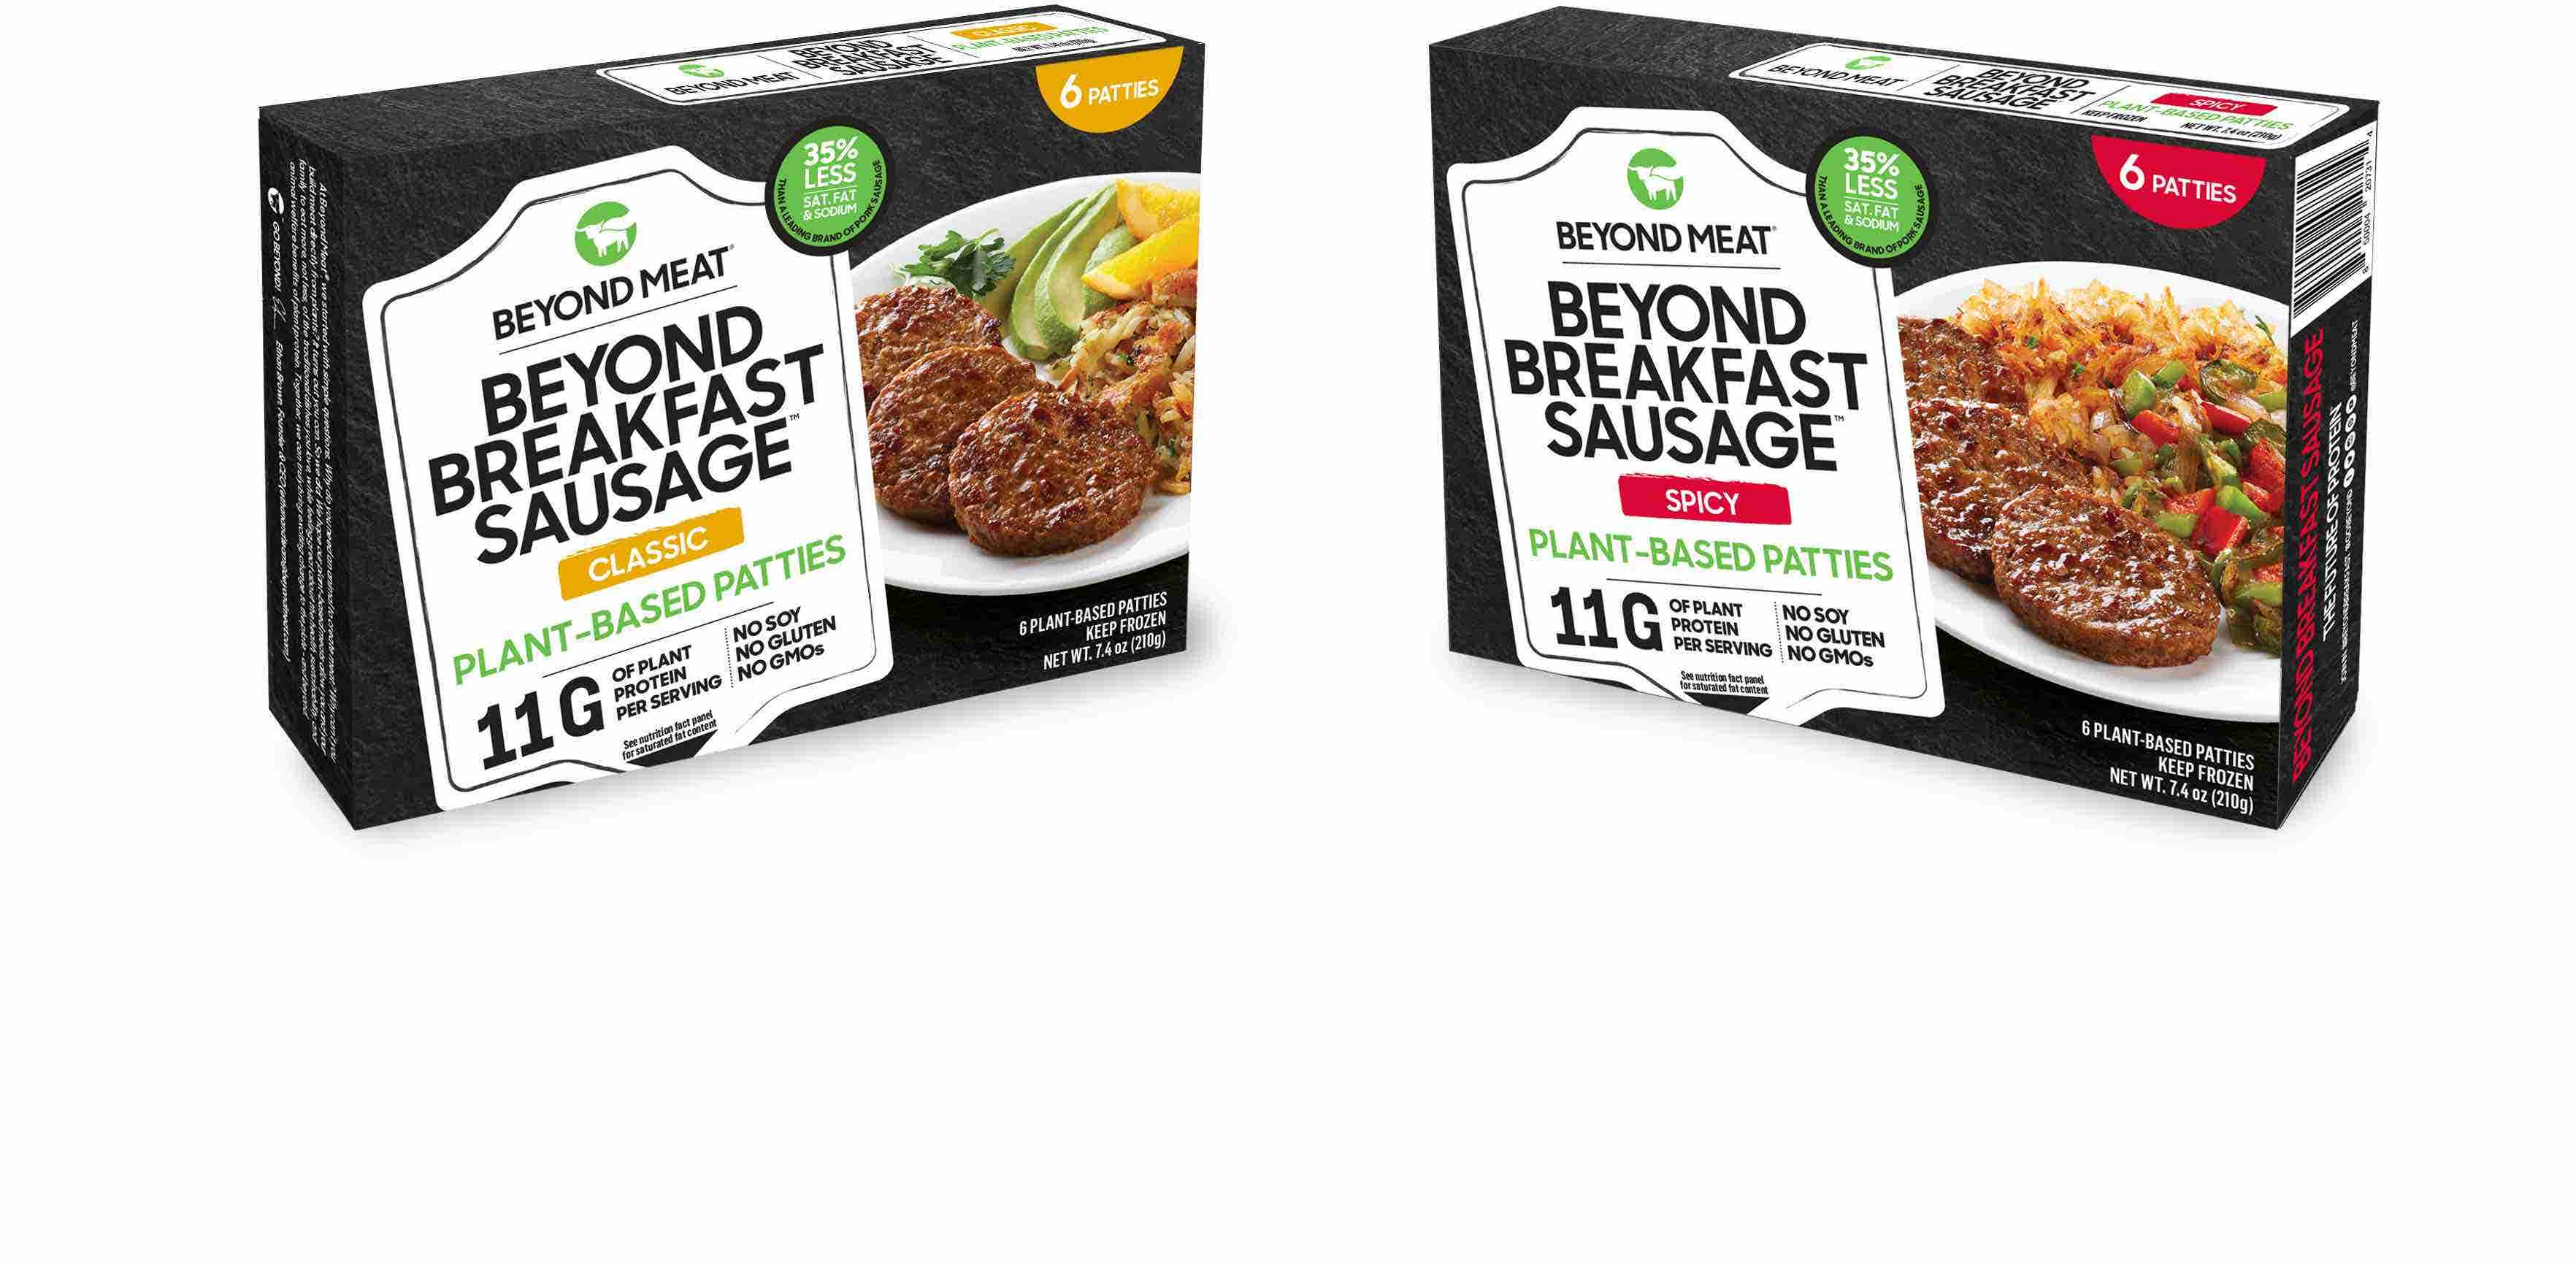 Beyond Meat to capitalize on plant-based popularity, introduce breakfast sausage in 5,000 new locations,